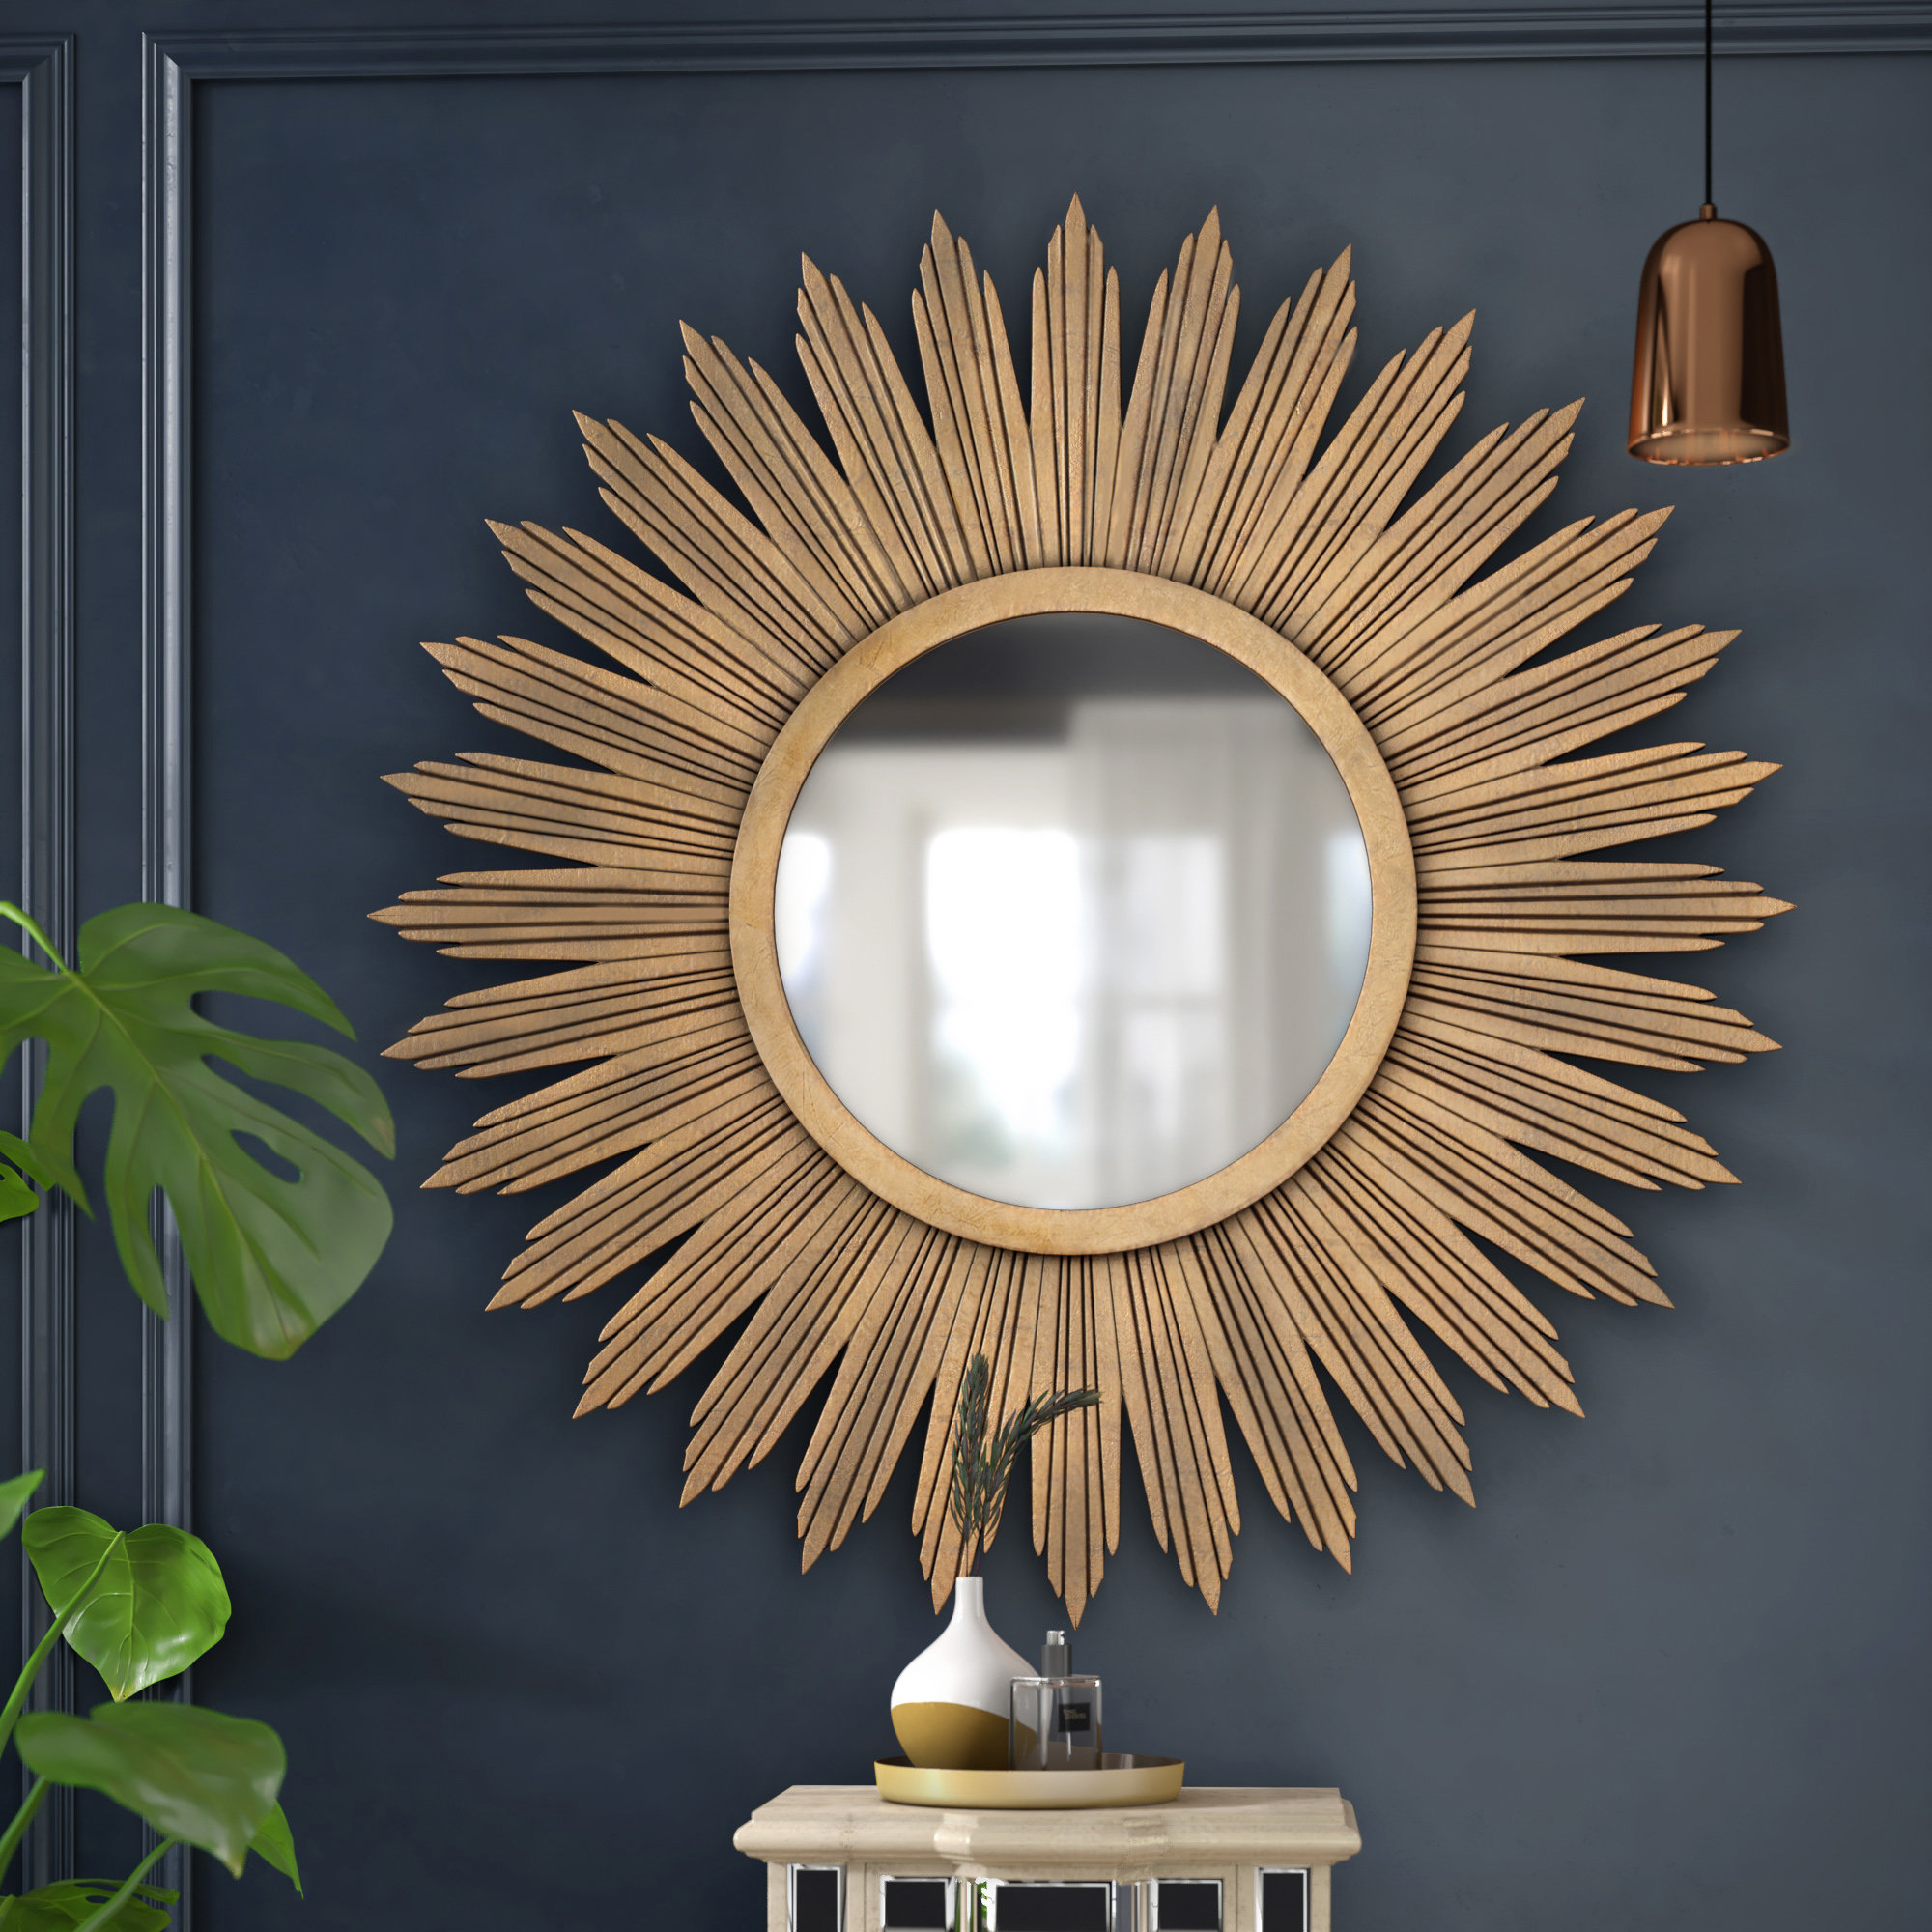 Aged Gold Wall Décor Modern & Contemporary Wall Mirror Inside Starburst Wall Decor By Willa Arlo Interiors (View 3 of 30)